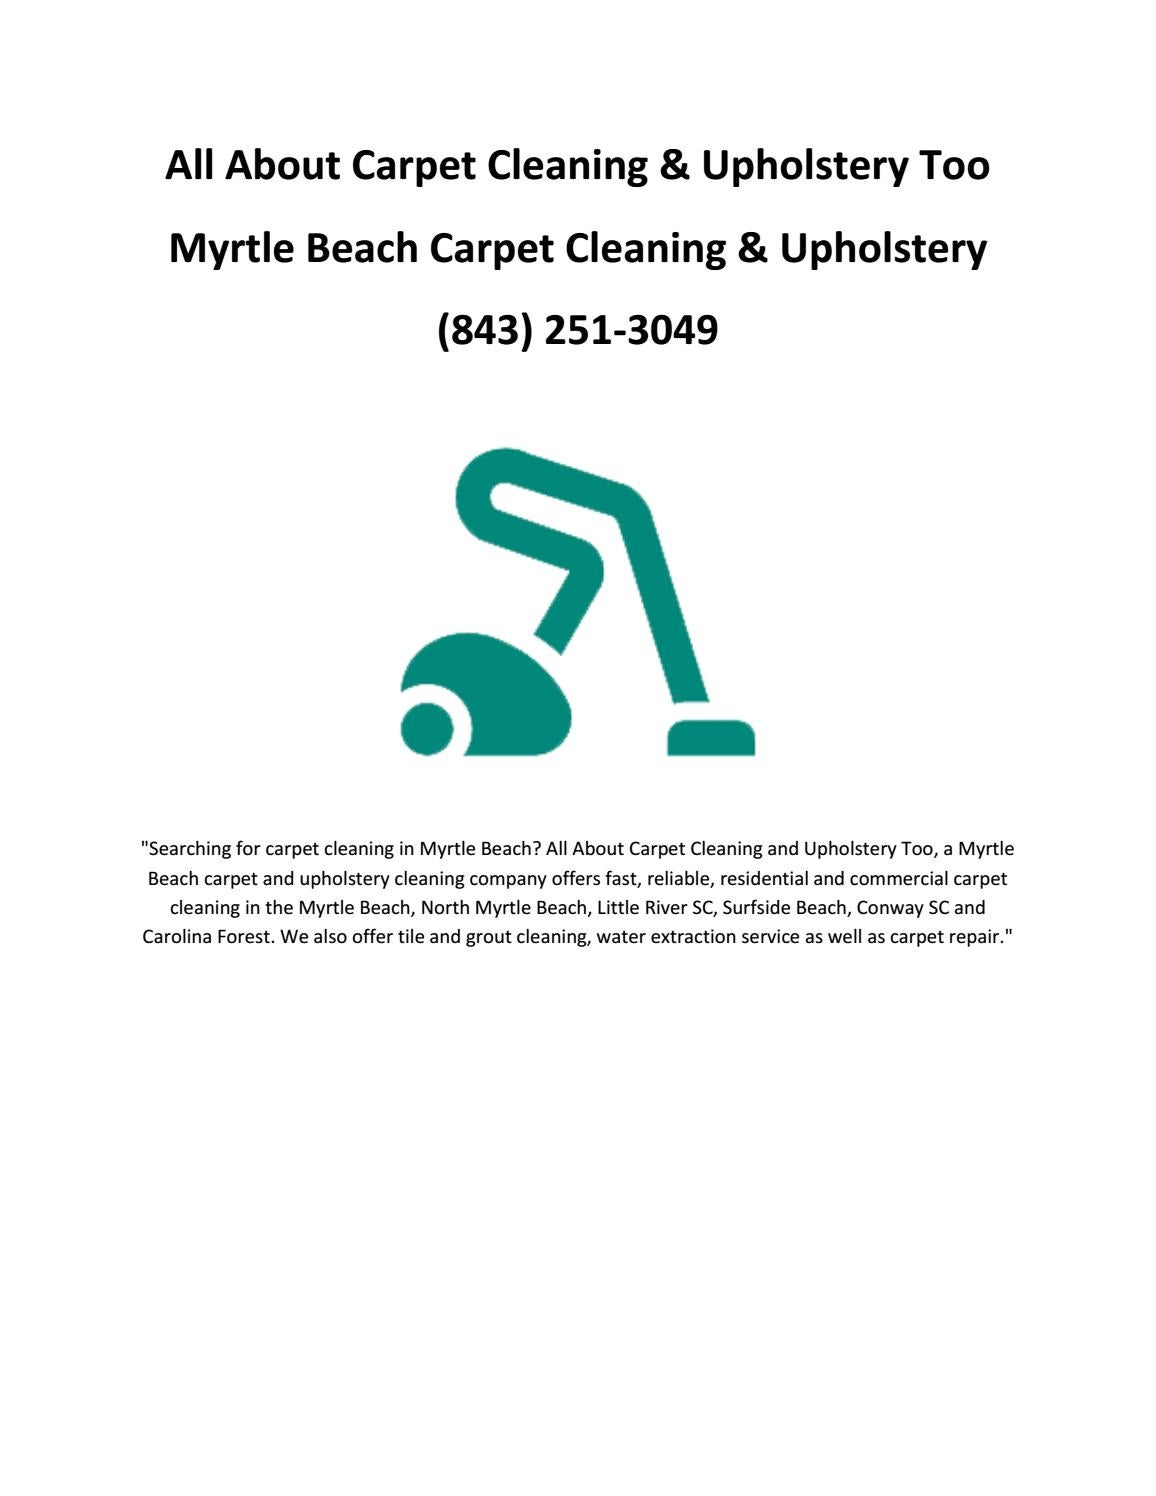 Carpet Cleaning Myrtle Beach Myrtle Beach Carpet Cleaning